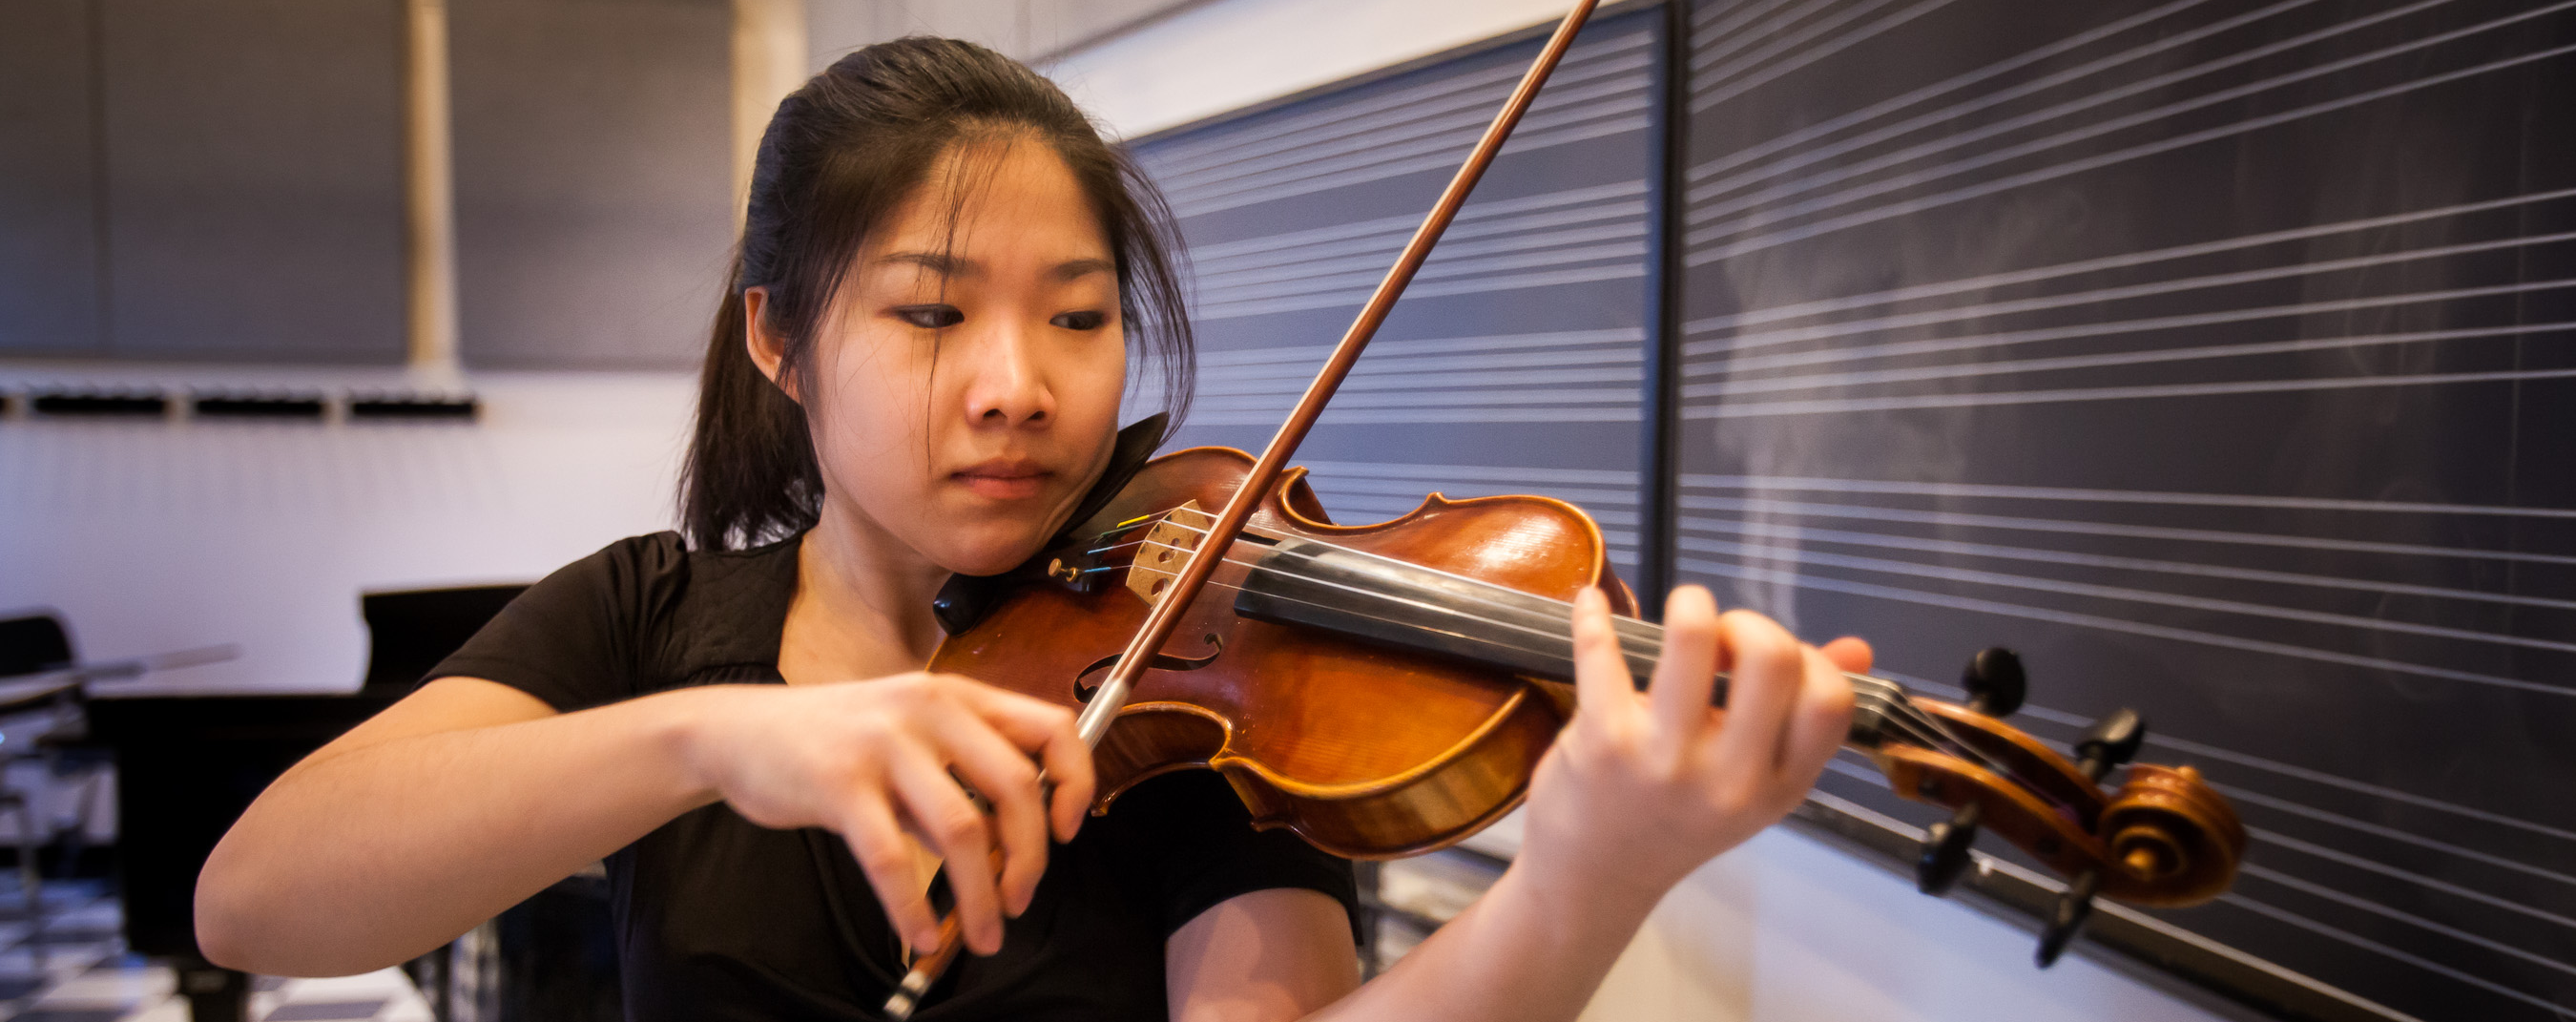 A young woman practices violin in front of a black board with white staff lines and a grand piano